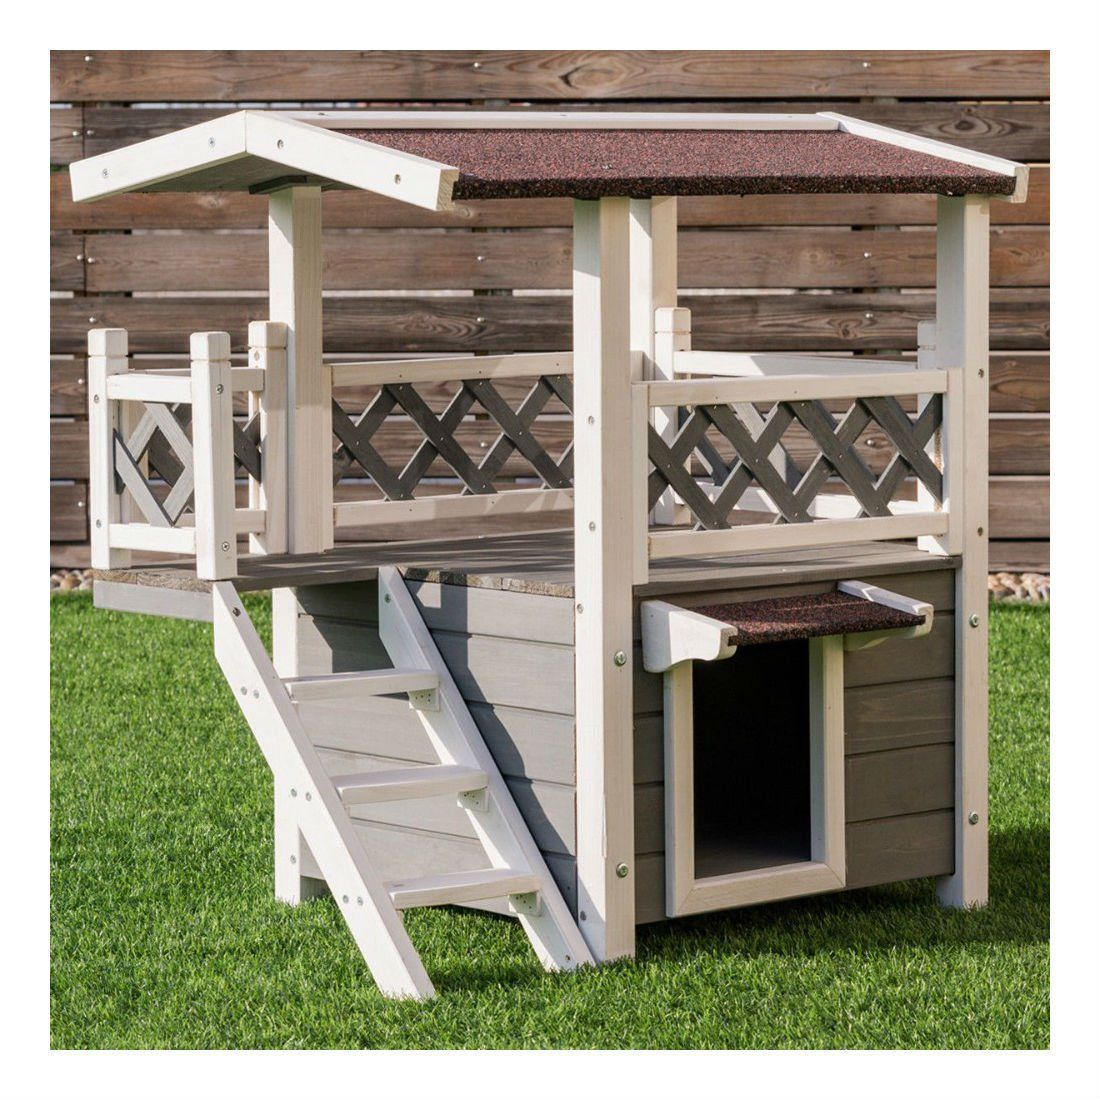 2 Story Outdoor Weatherproof Wooden Cat House Condo Shelter With Ladder Nice Of You To Drop By To Visit Our Wooden Cat House Dog House Diy Outdoor Cat House